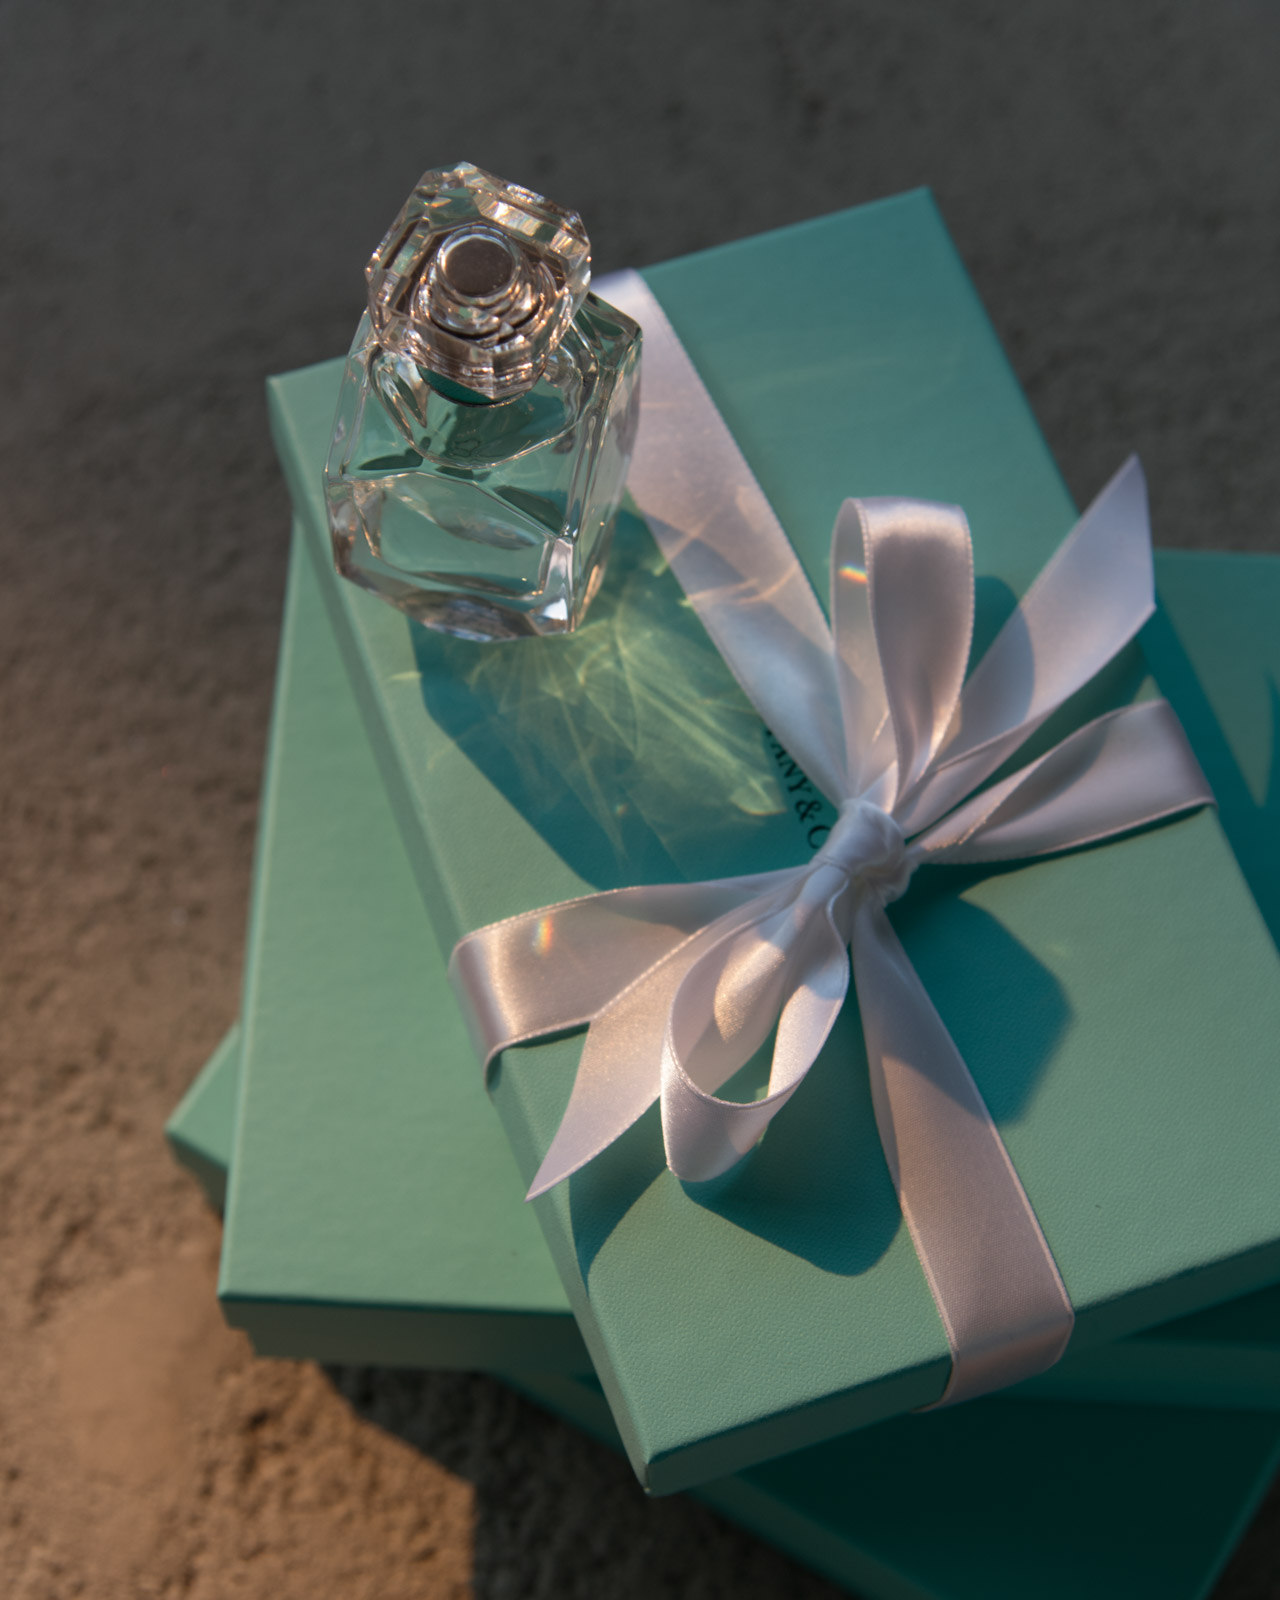 love [lʌv] noun 1. a profoundly tender, passionate affection for another person 2. a feeling of a warm personal attachment or deep affection.tiffany and co. blue boxes with perfume valentinesday gift guide stormwes